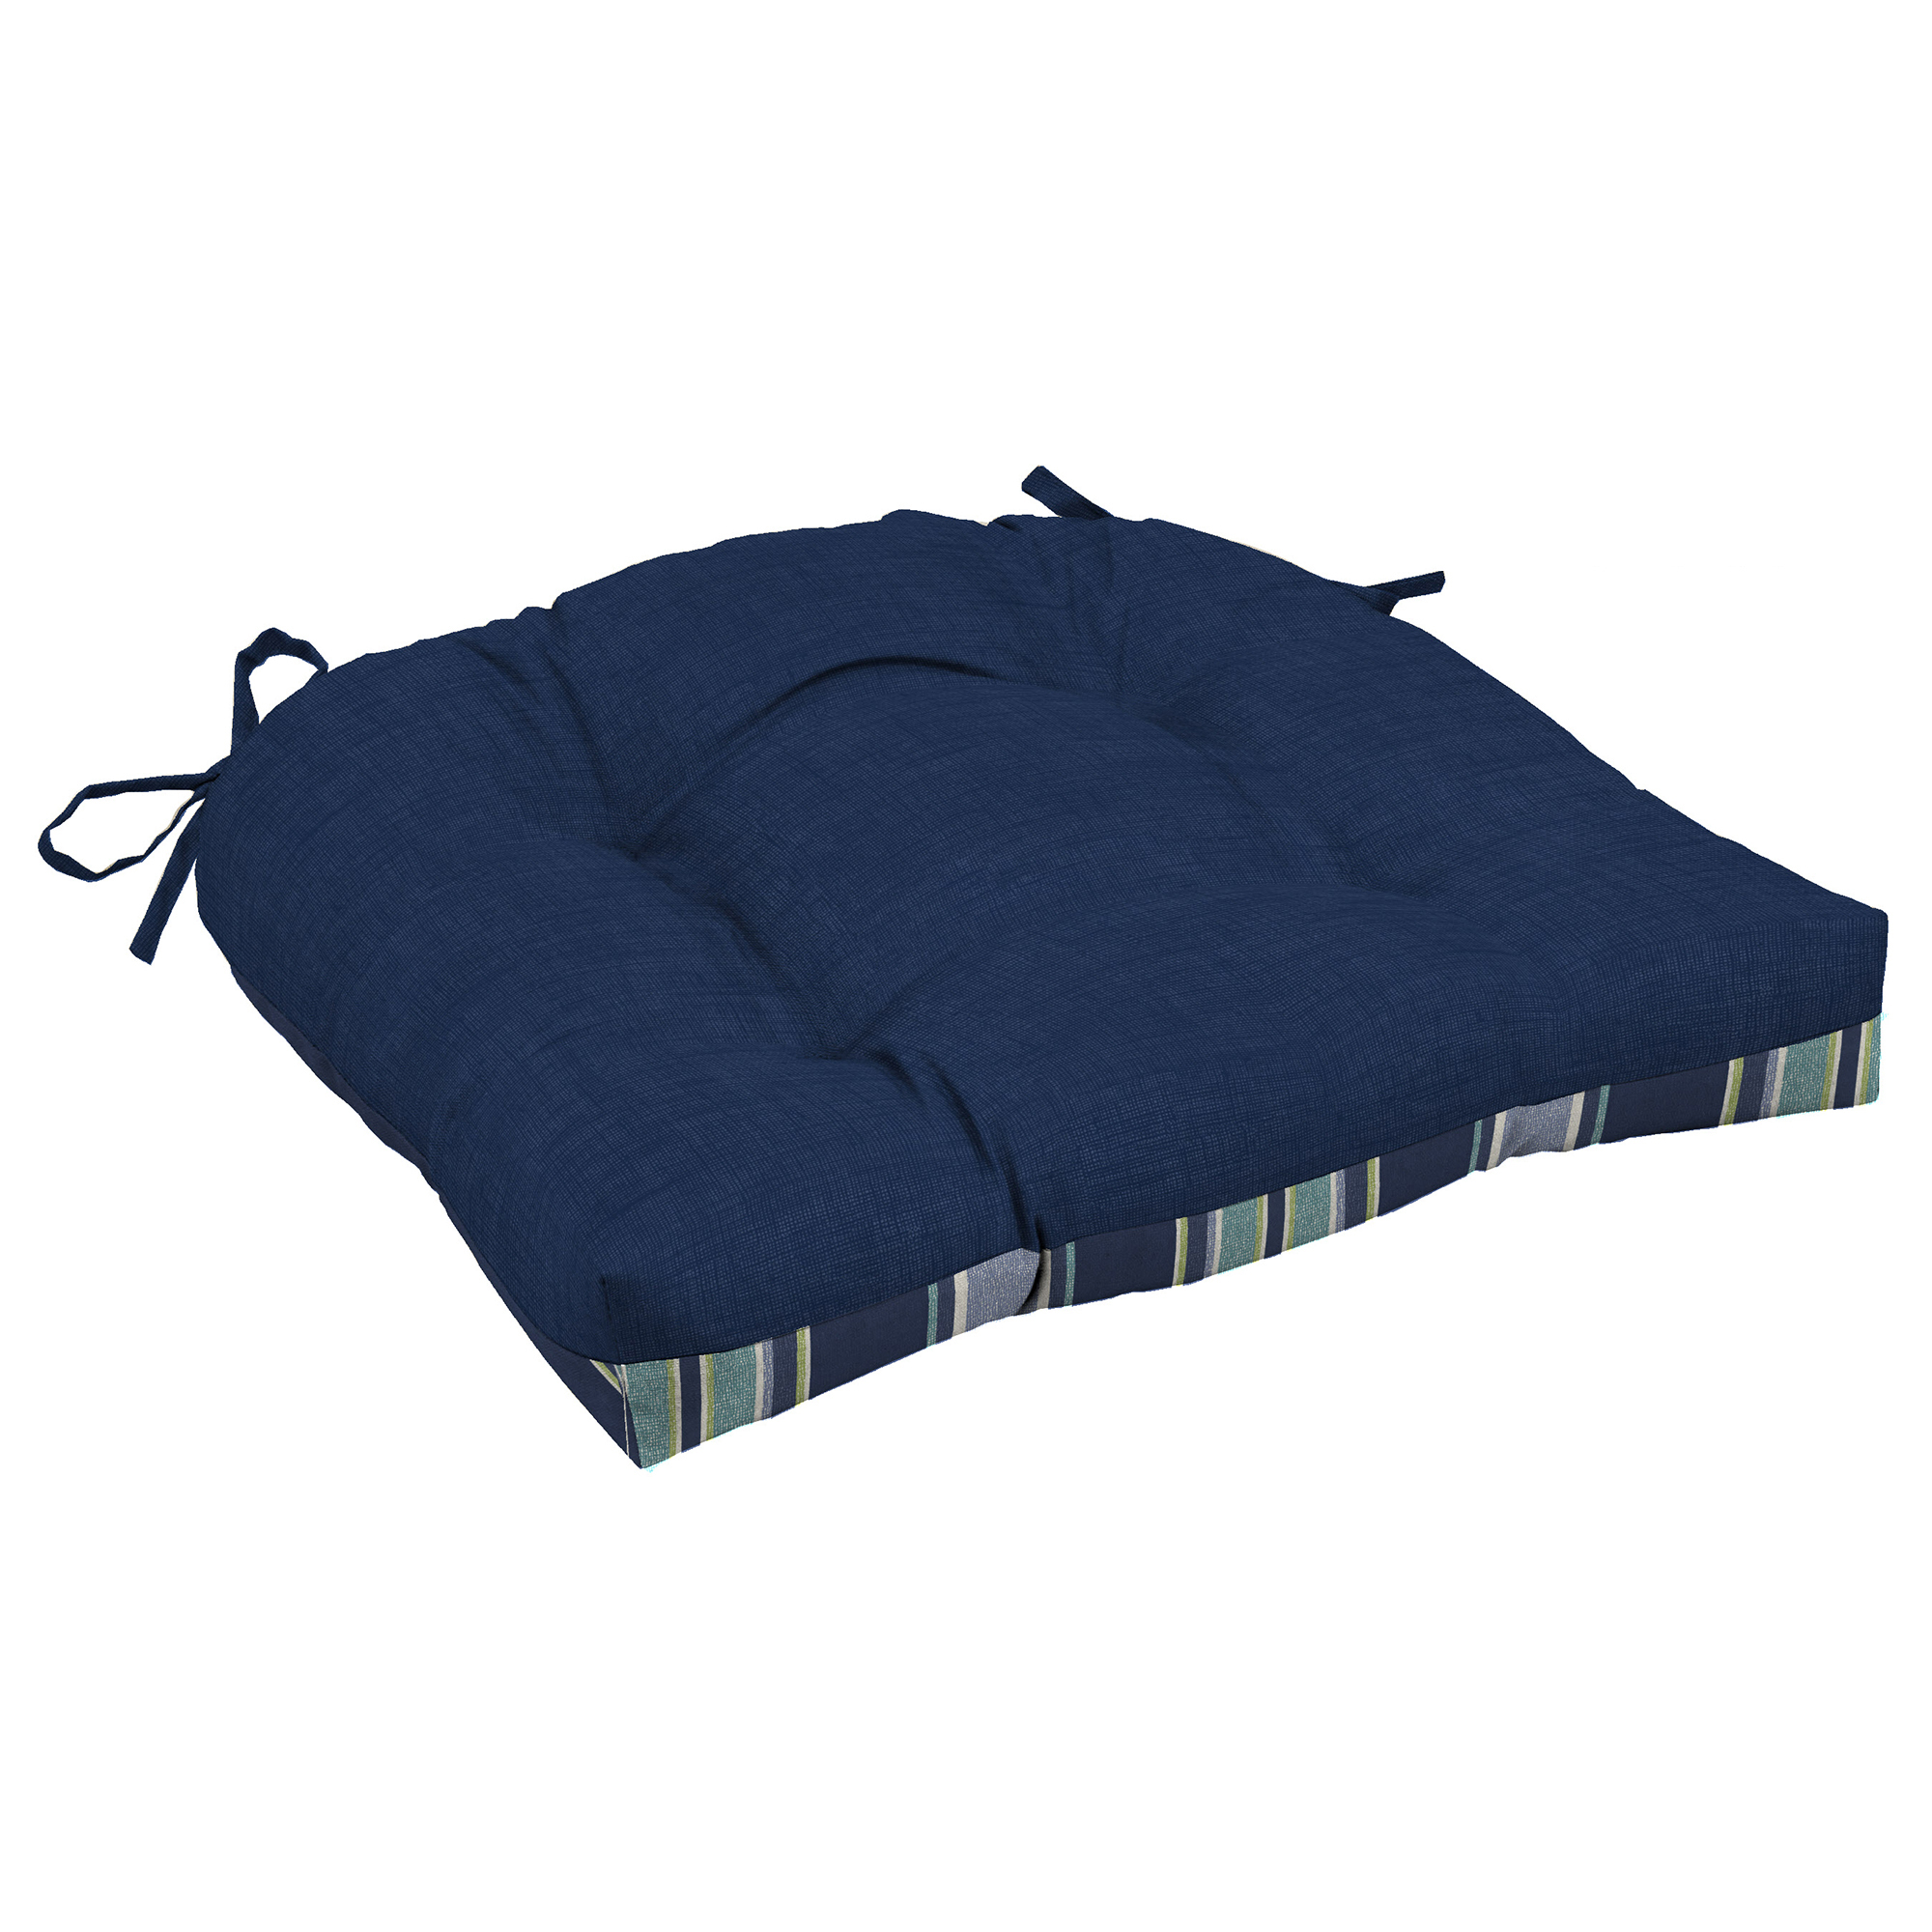 wicker chair cushions with ties indoor hanging egg stand essential garden texture blue seat pad limited